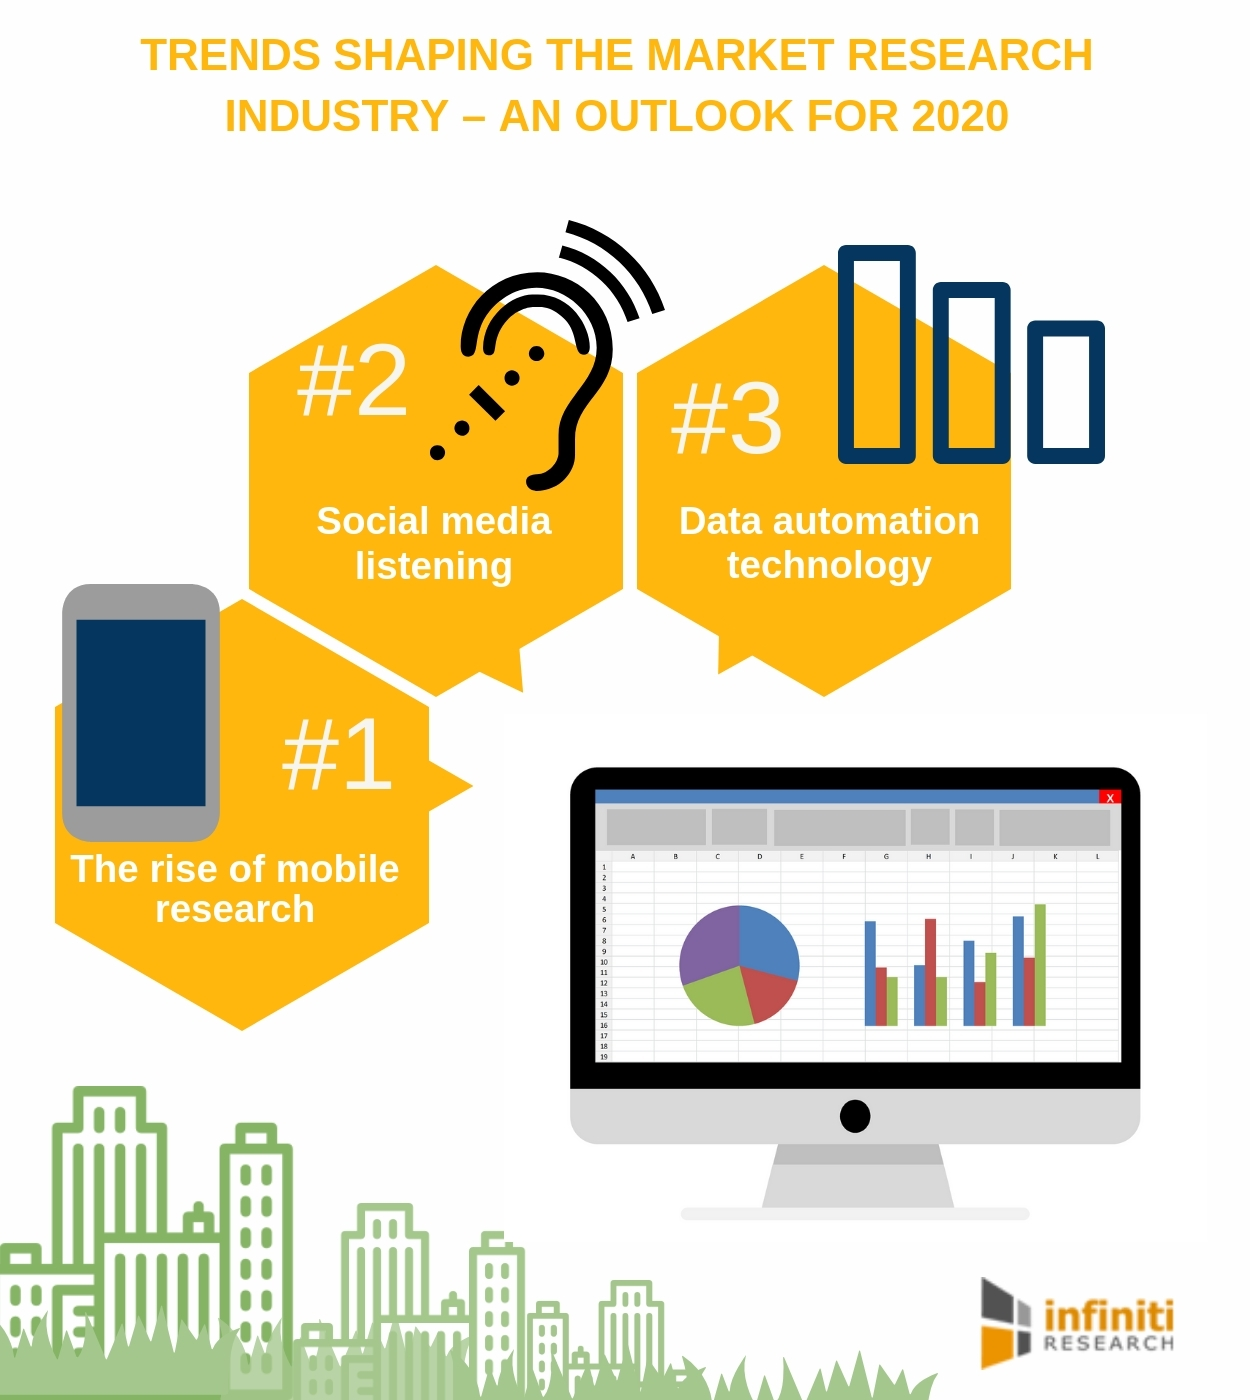 Business Trends 2020.Infiniti Research Explores The Most Surprising Trends In The